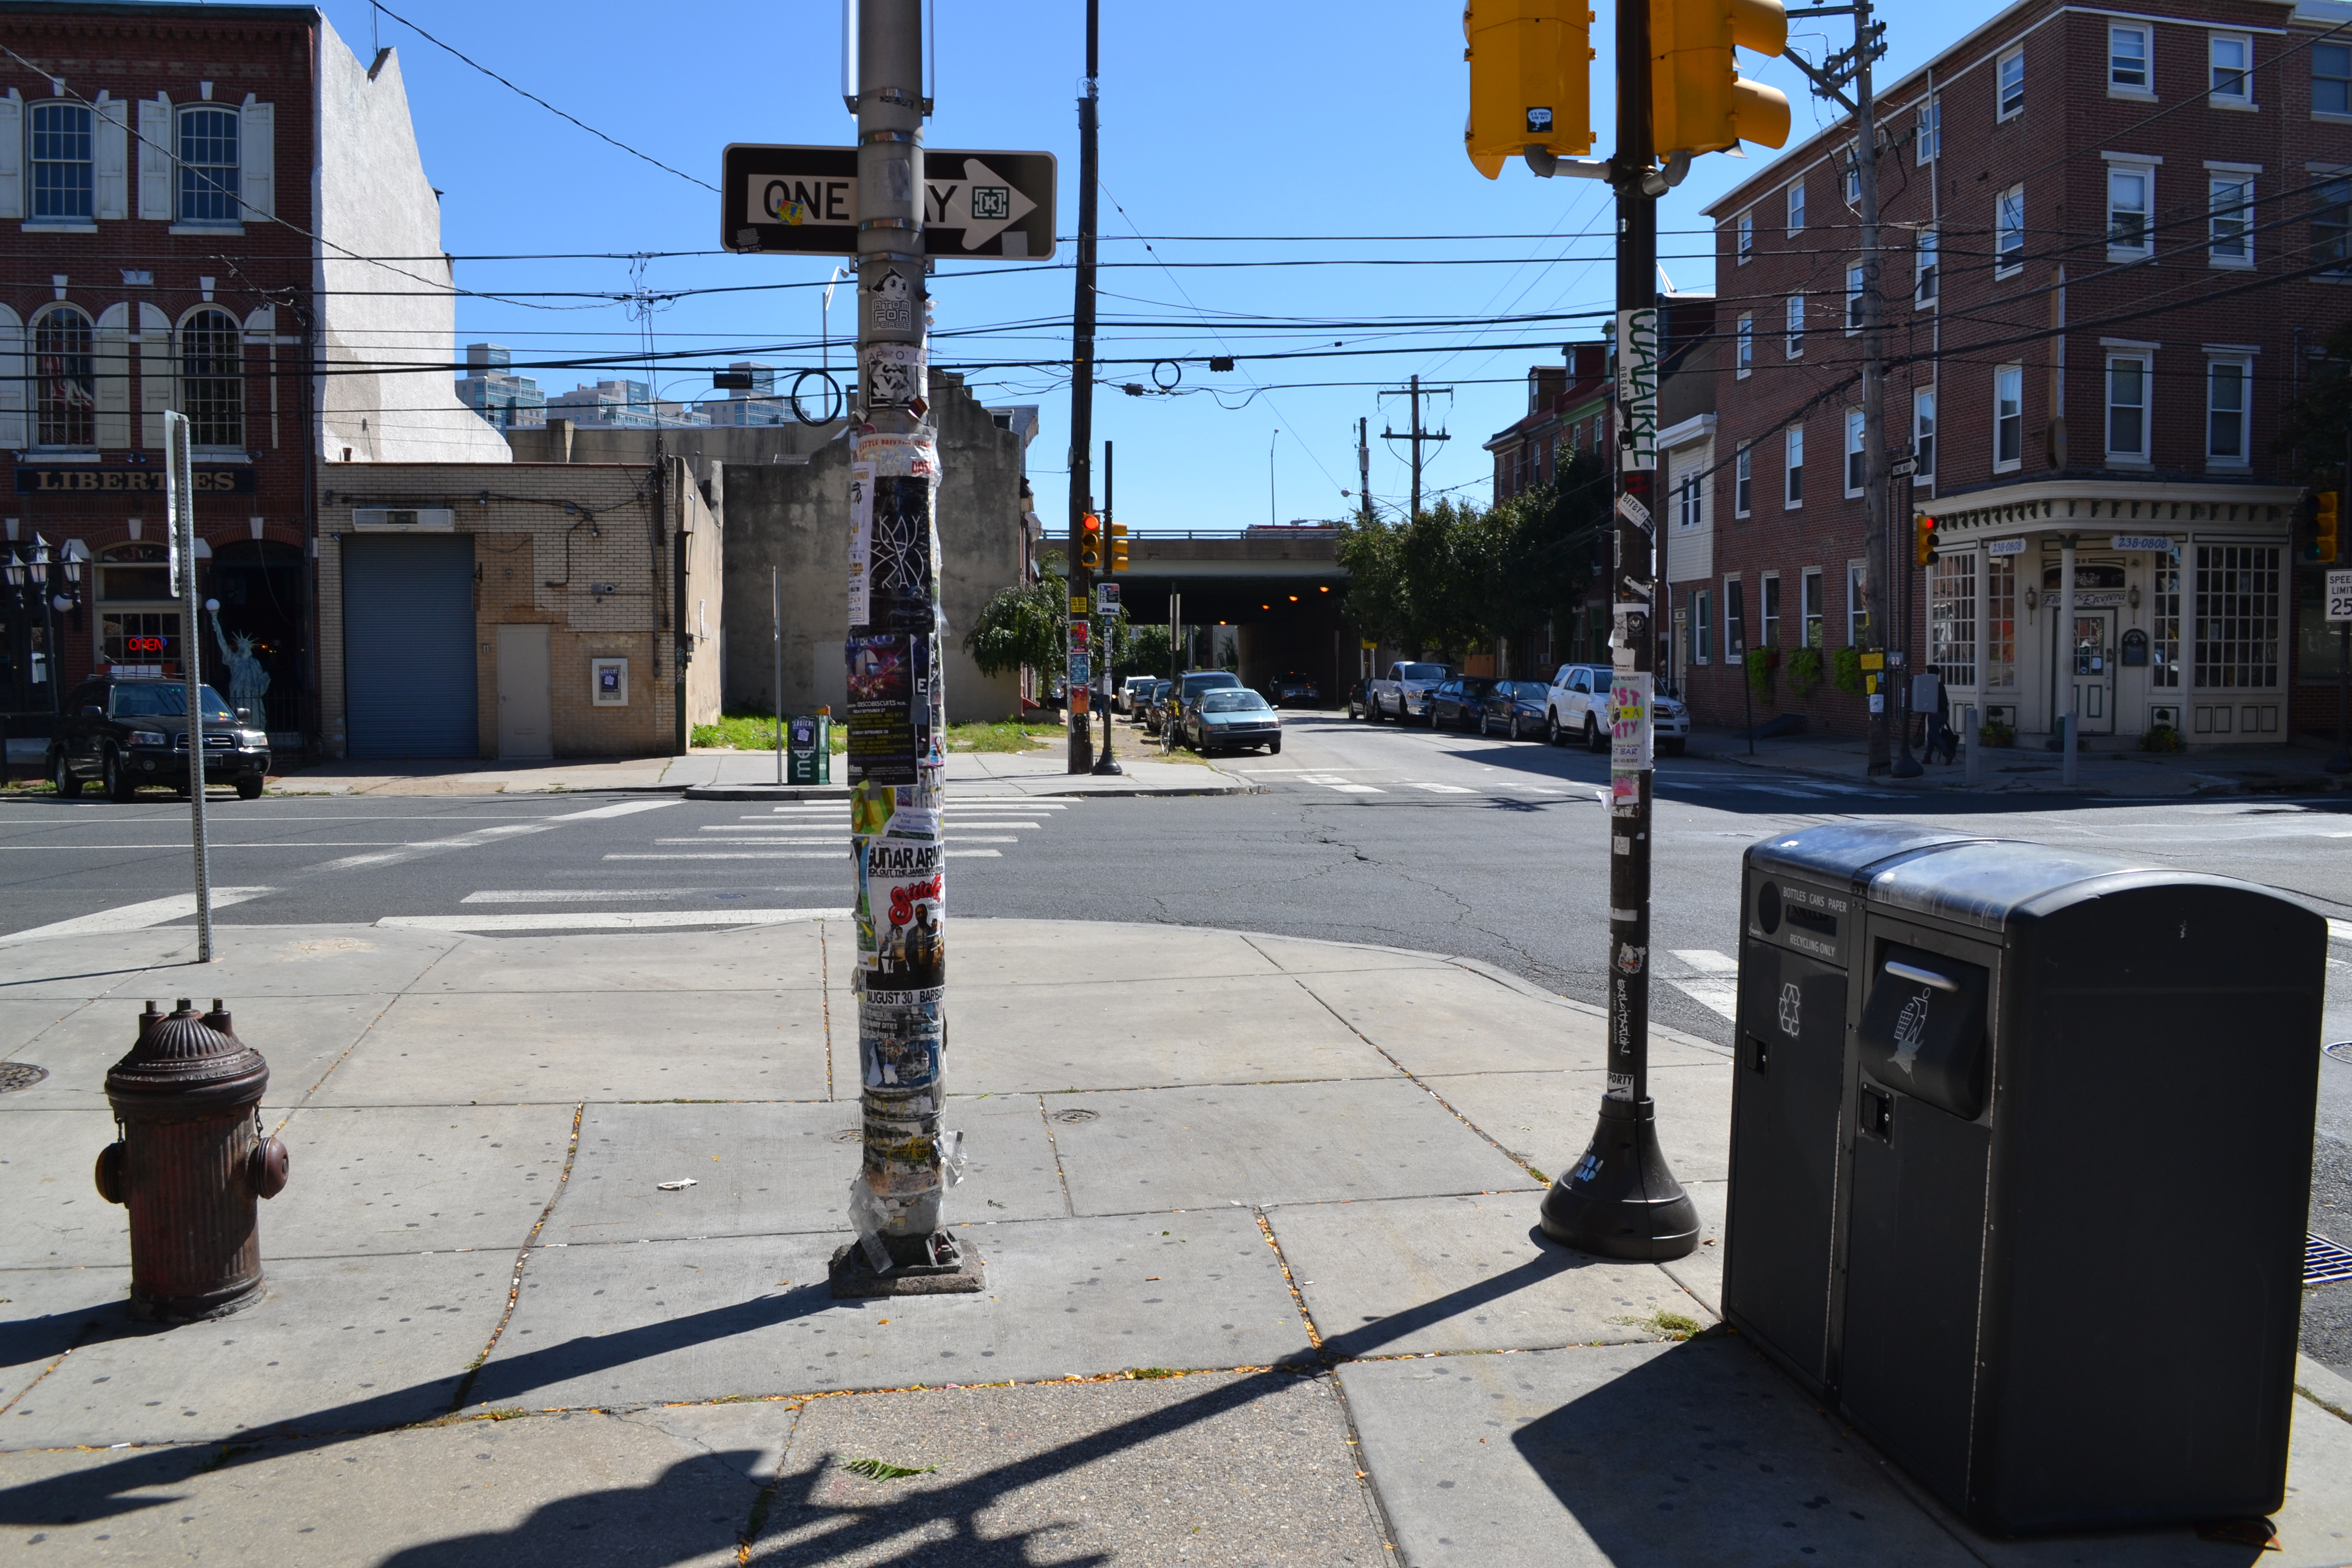 As Northern Liberties becomes more of a destination neighborhood, there is more emphasis on reducing litter